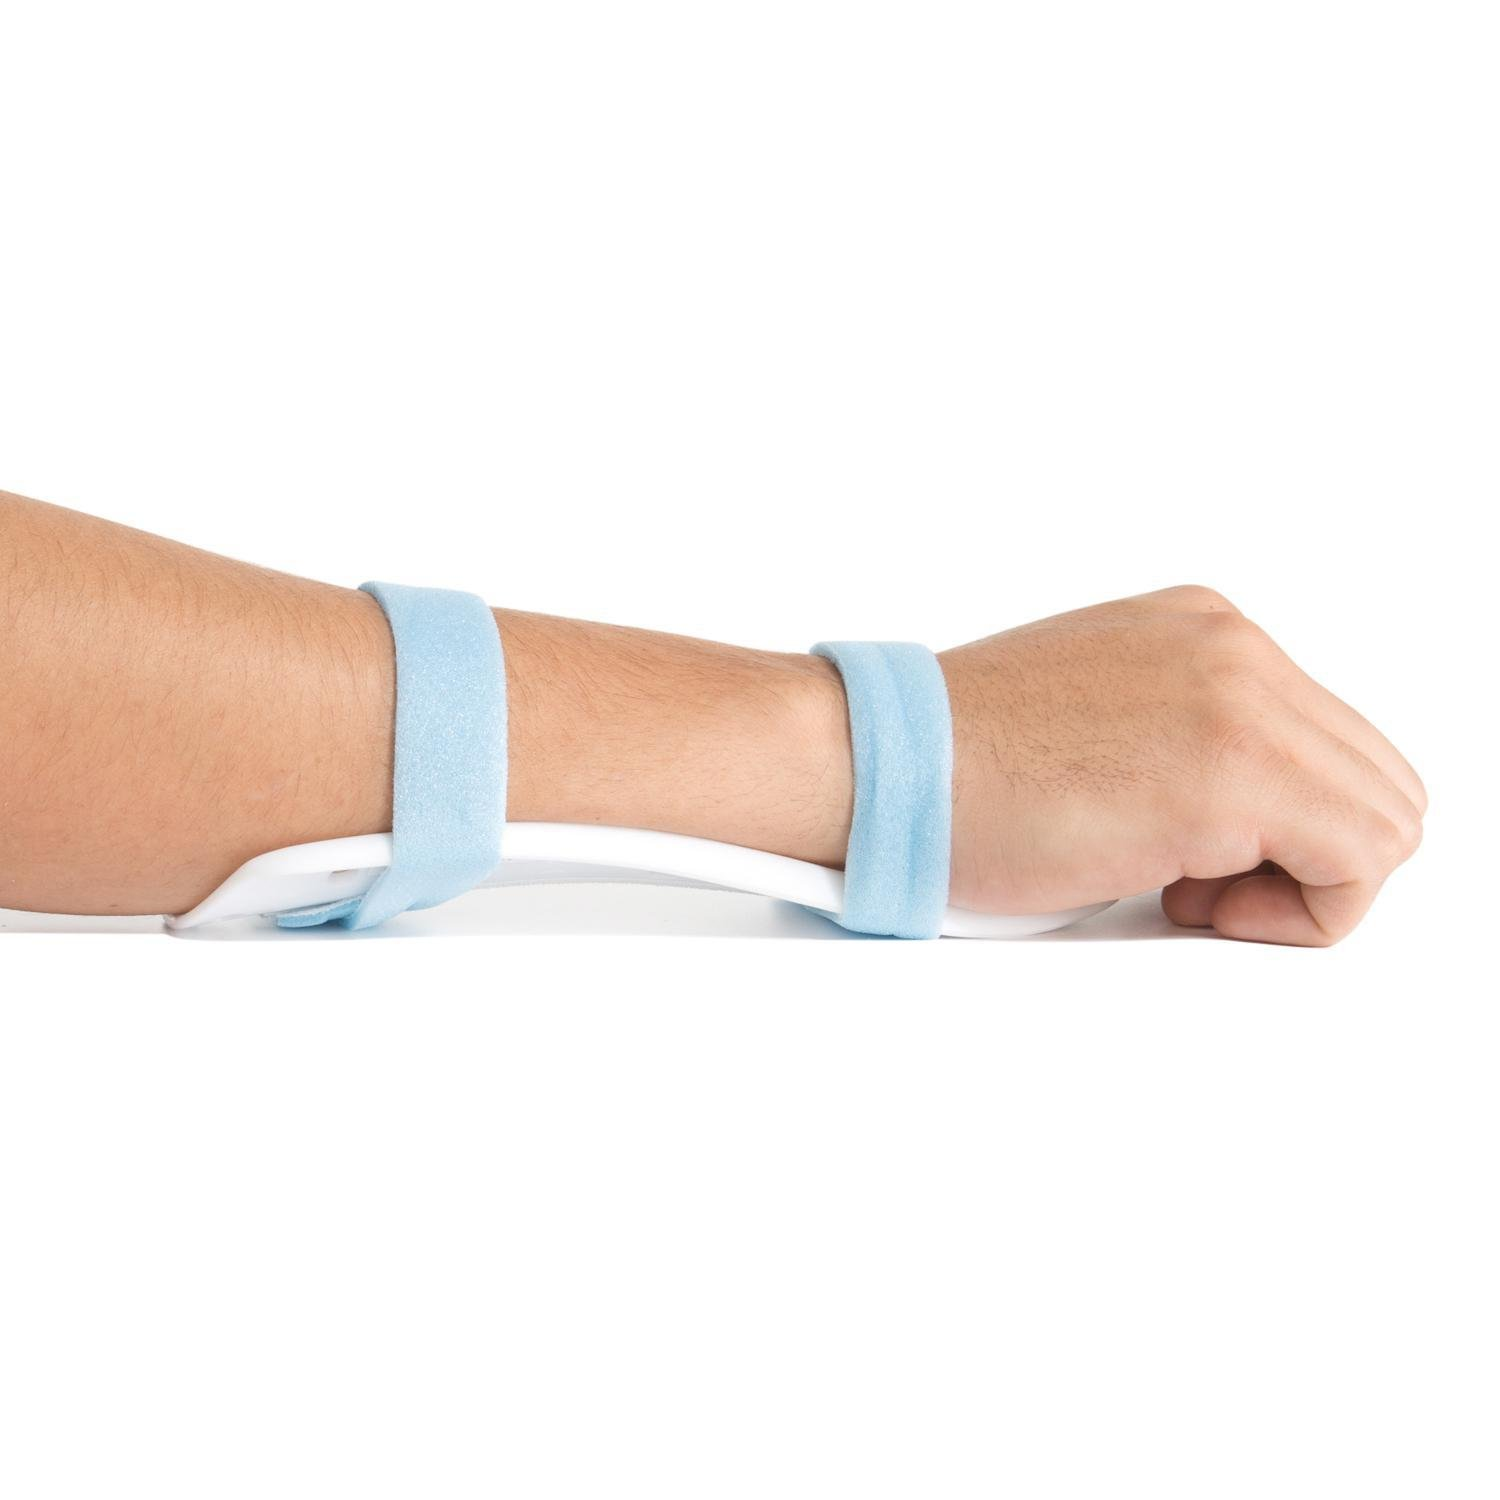 Halyard Health 29900 HAND-AID I.V. Wrist Support, Adult (Case of 20) by Halyard Health (Image #2)